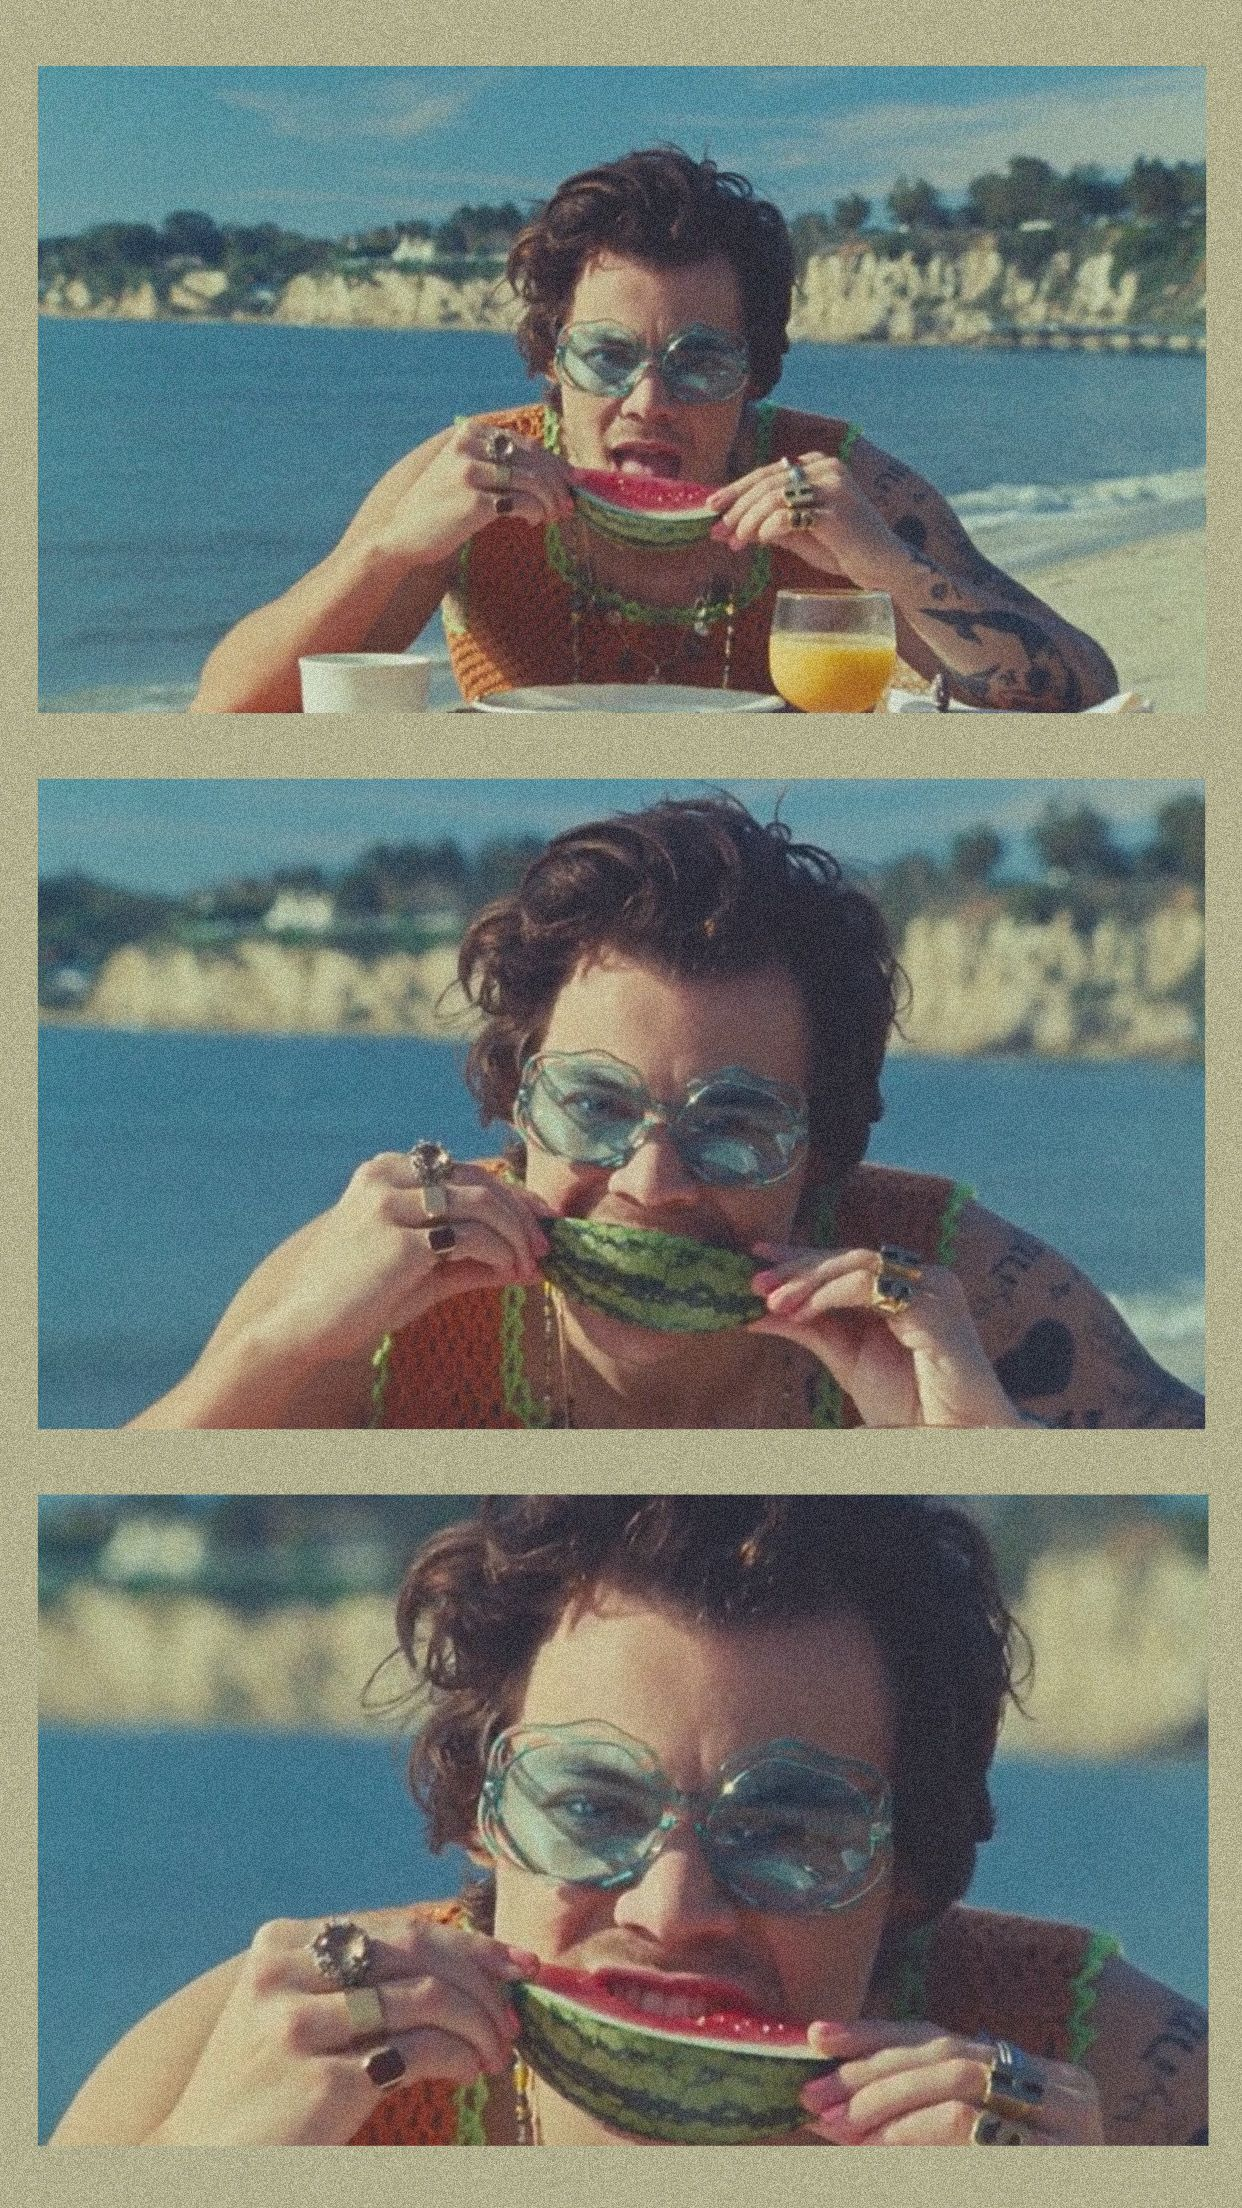 Harry Styles Watermelon Sugar Wallpaper Cinematography Egypt Filmmaking Harry Museums Styles In 2020 Harry Styles Harry Styles Pictures Harry Styles Photos